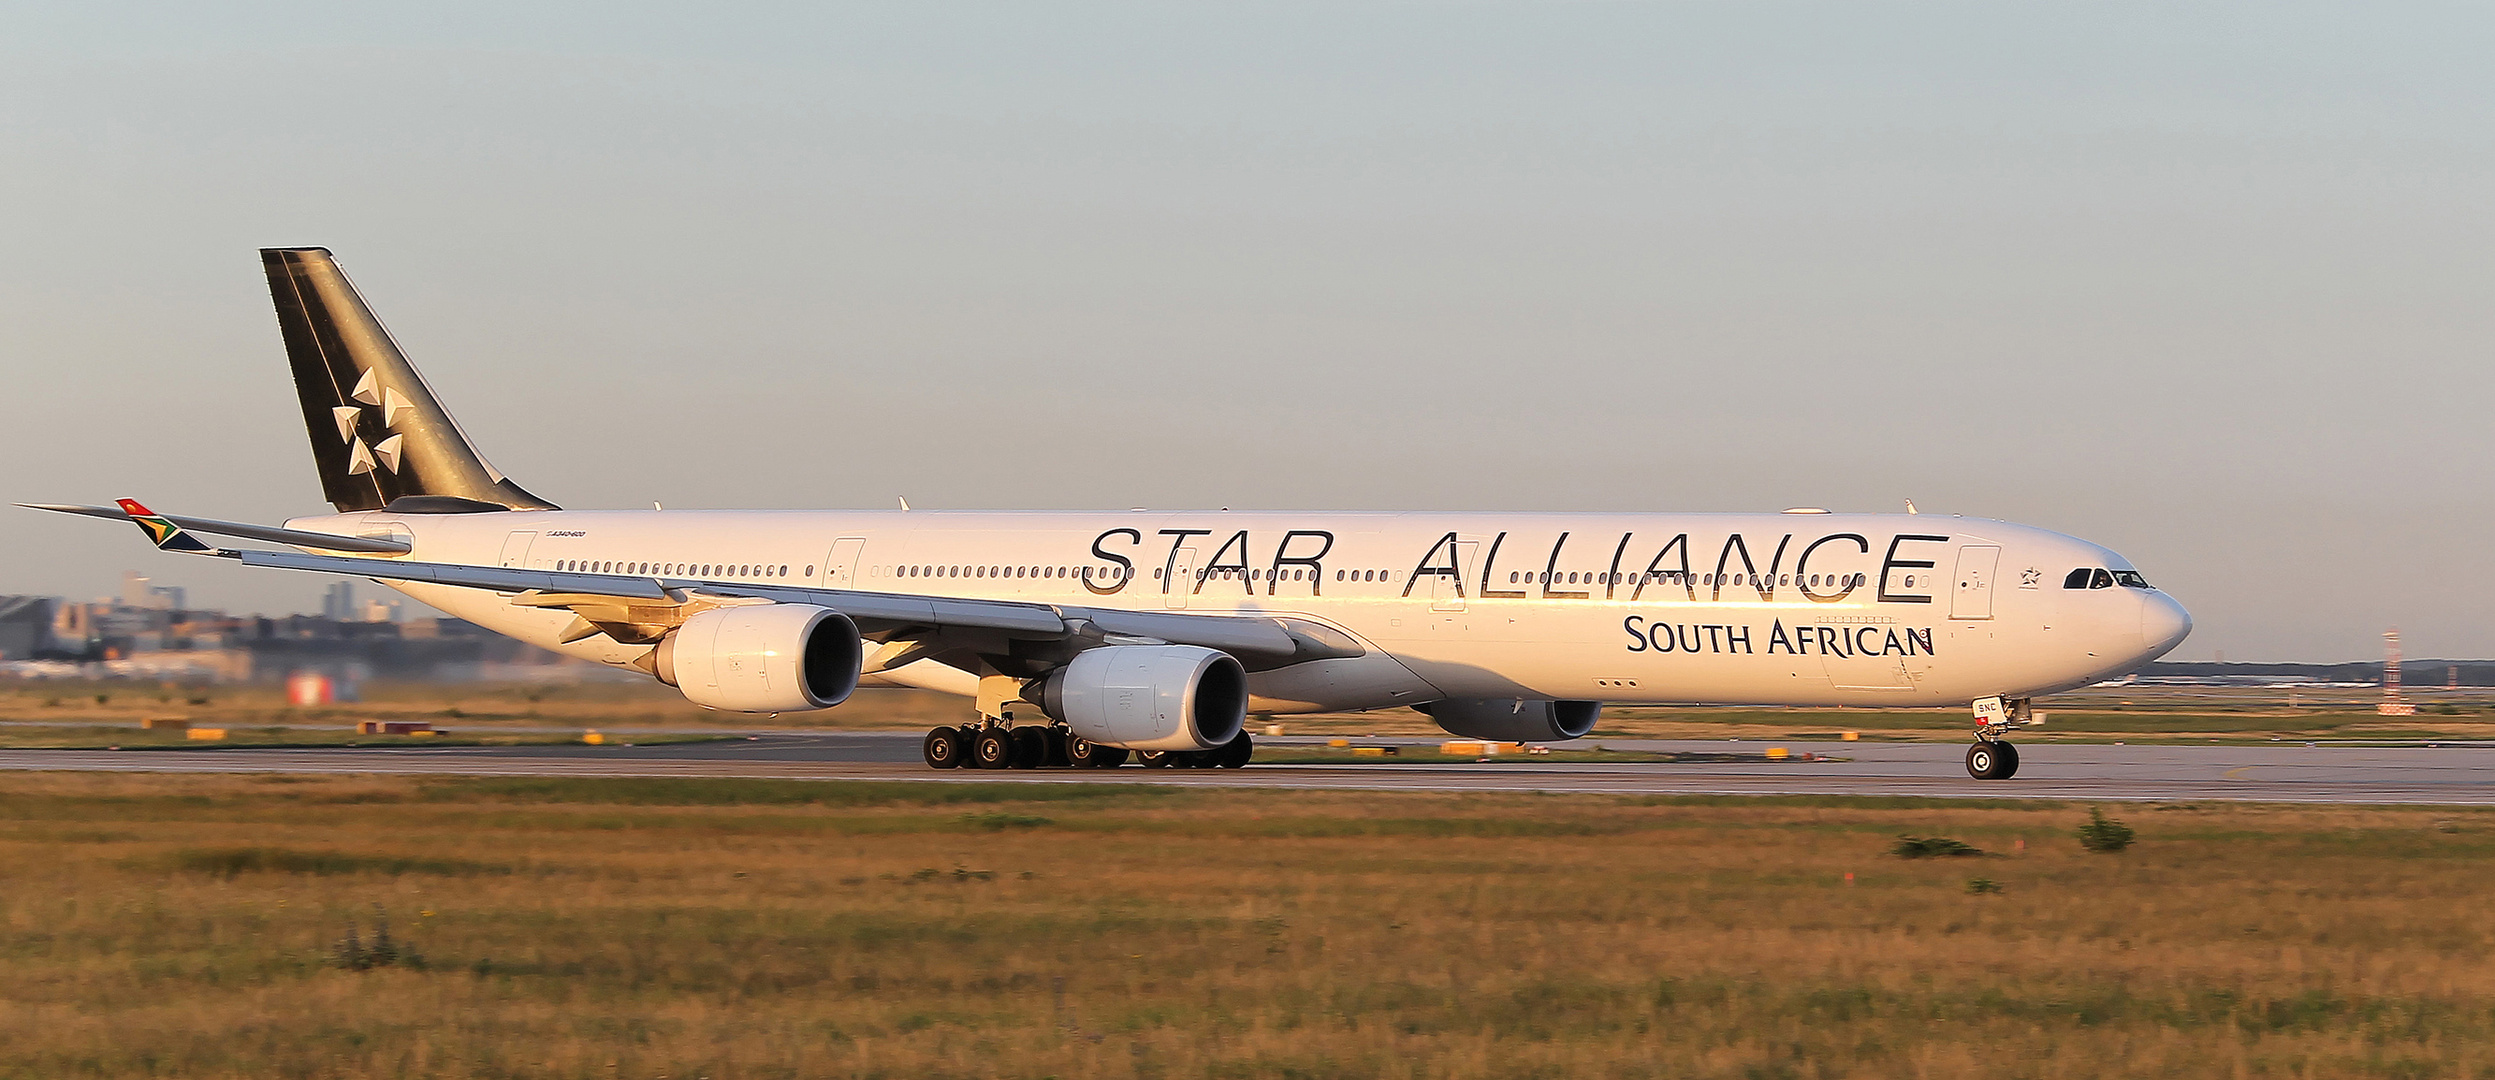 """South African """"Star Alliance"""""""